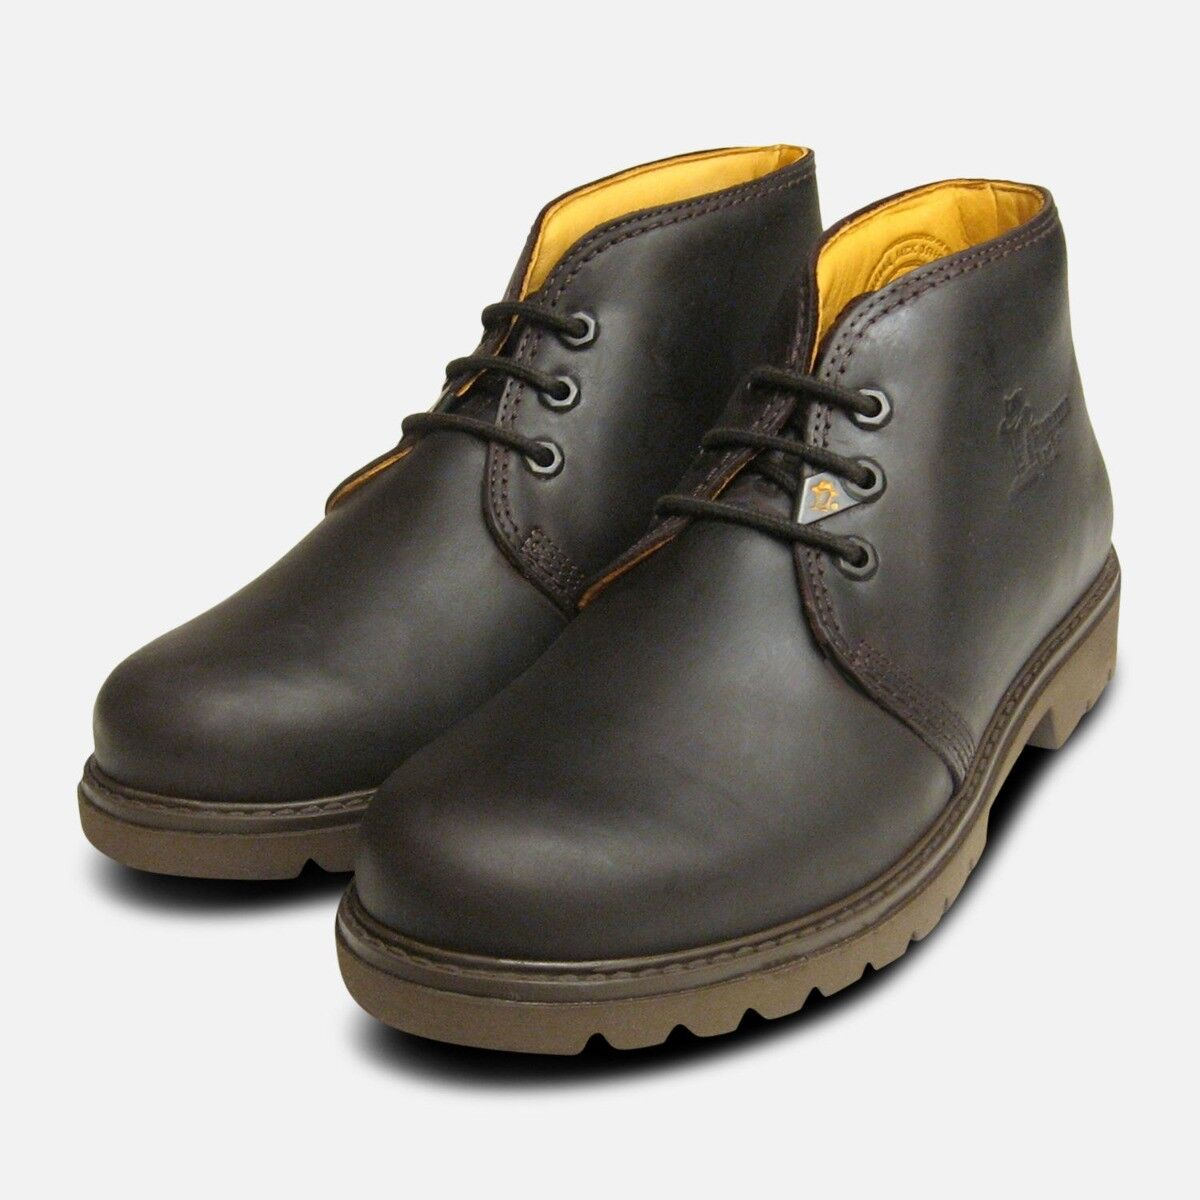 Mr Panama Jack Dark Brown Waxy Waterproof Havana Joe Boots